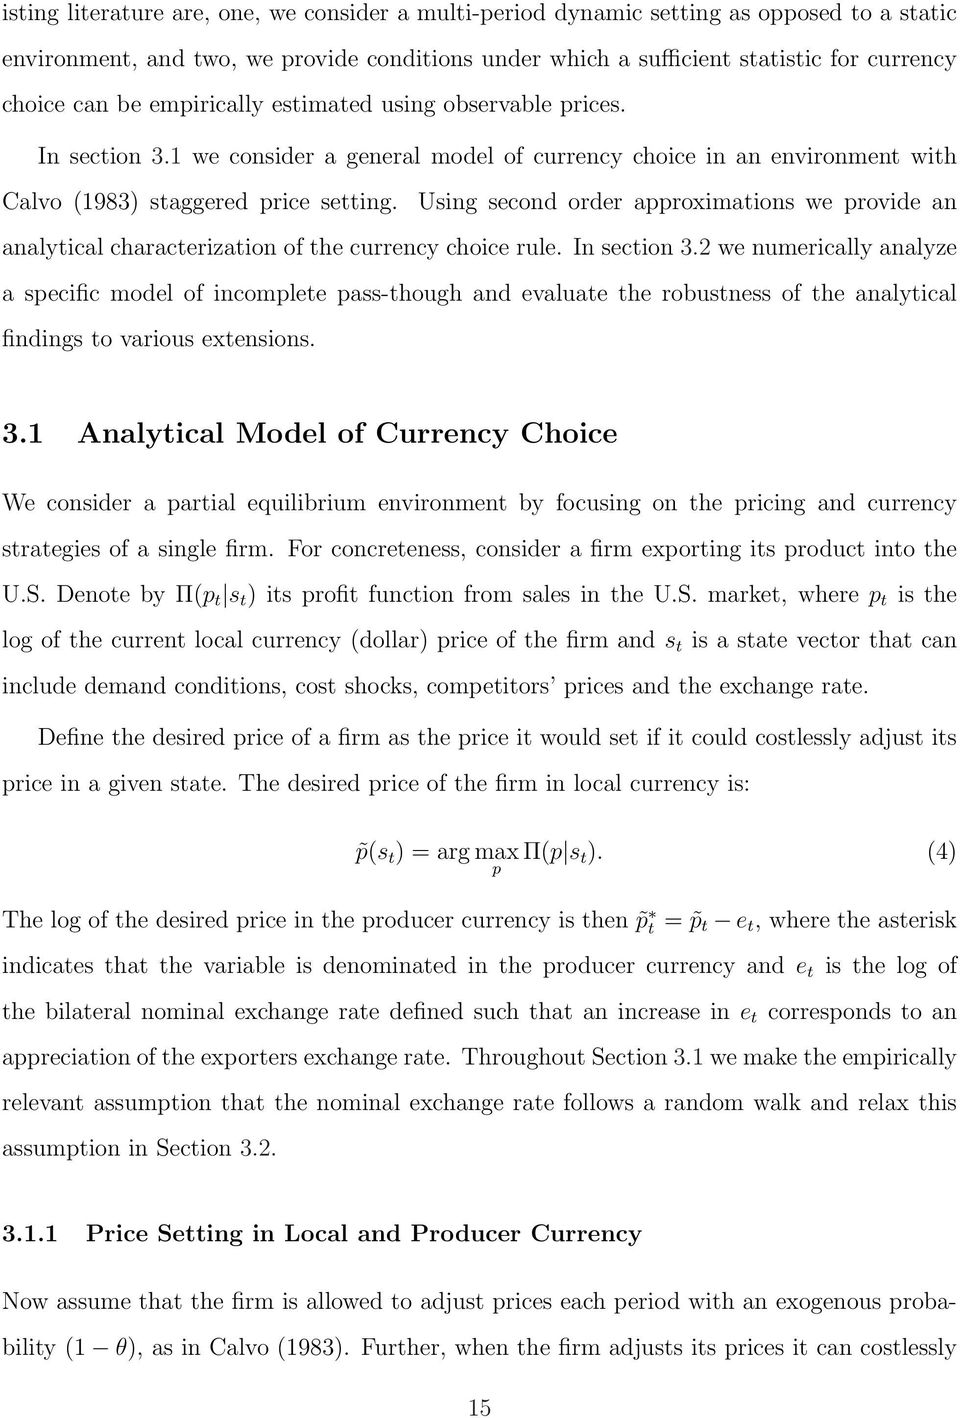 Using second order approximations we provide an analytical characterization of the currency choice rule. In section 3.